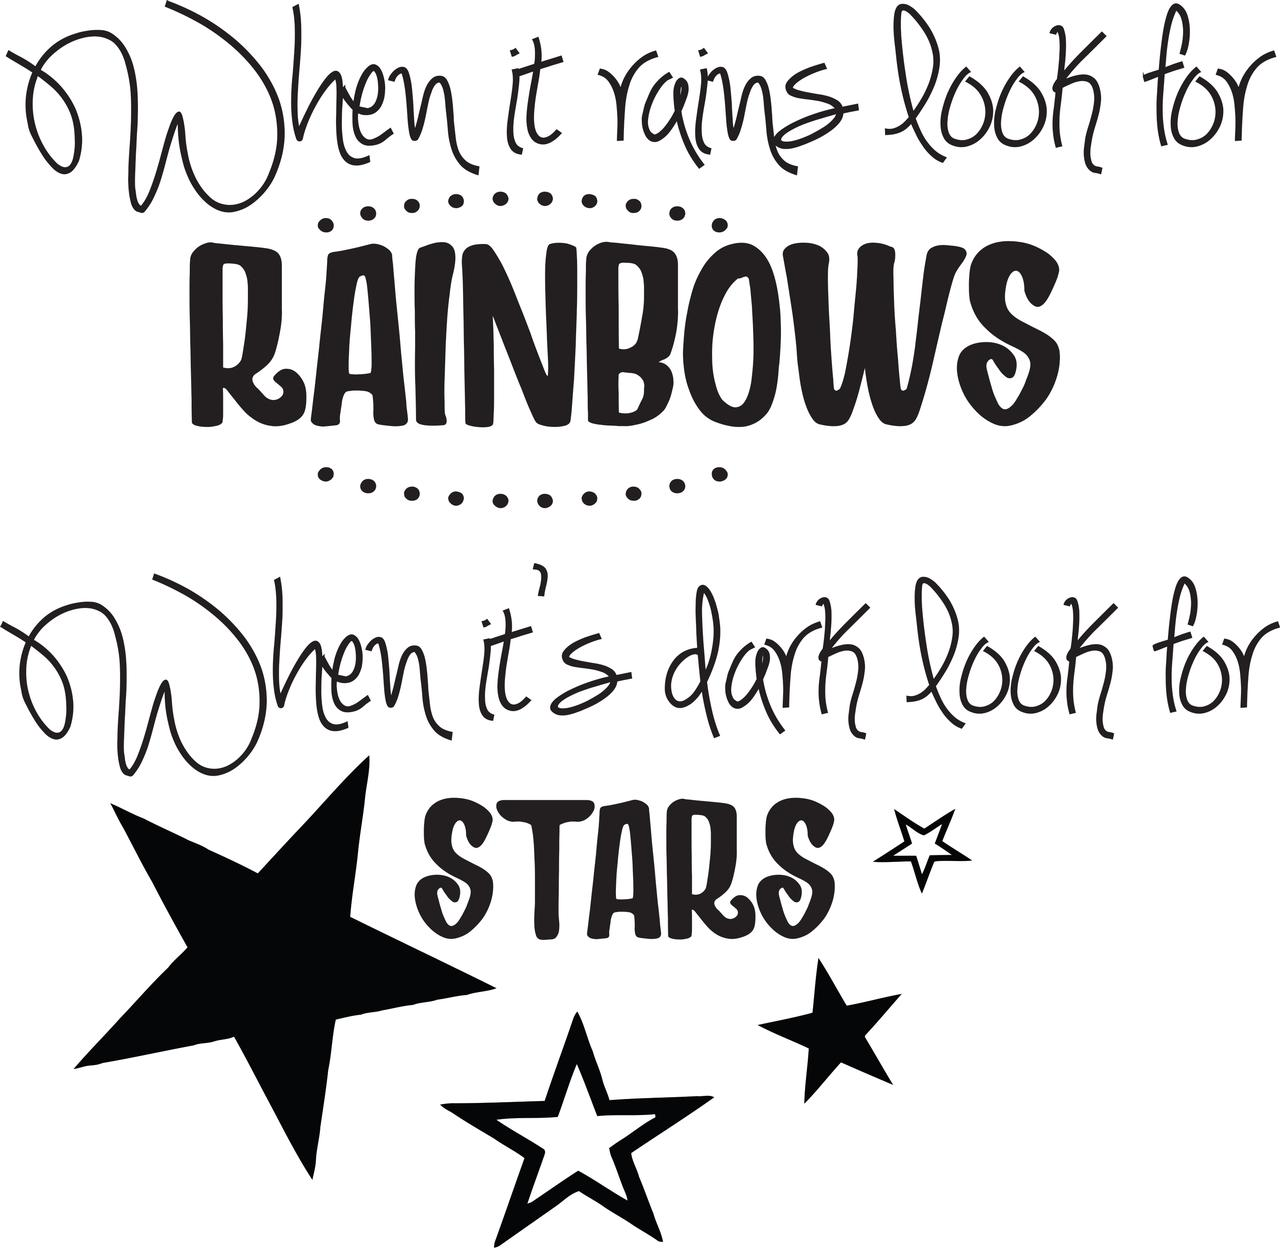 "When It Rains, Look For Rainbows When Its Dark, Look For Stars - Vinyl Wall Sticker / Decal - 20""x20"""